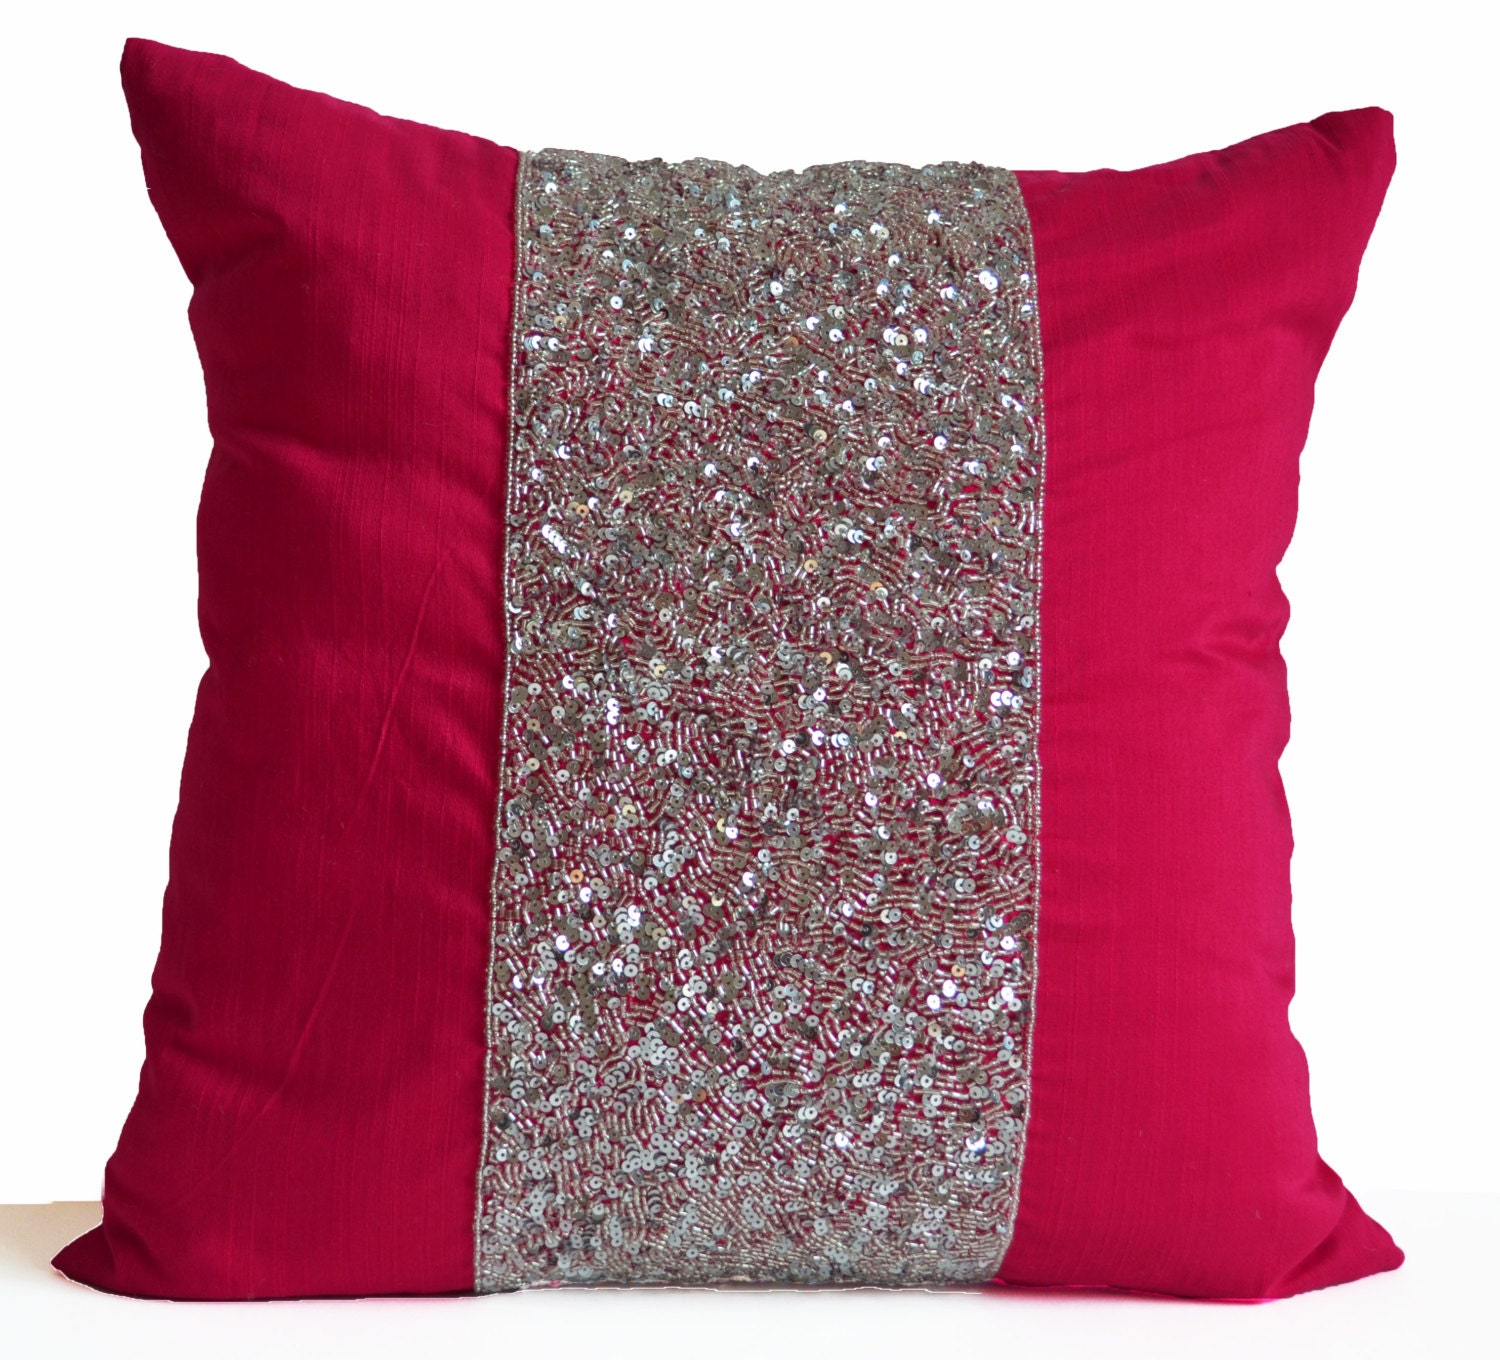 Pink Decorative Pillows : Pink Decorative Pillow Cushion Cover Hot Pink Pillow Silver